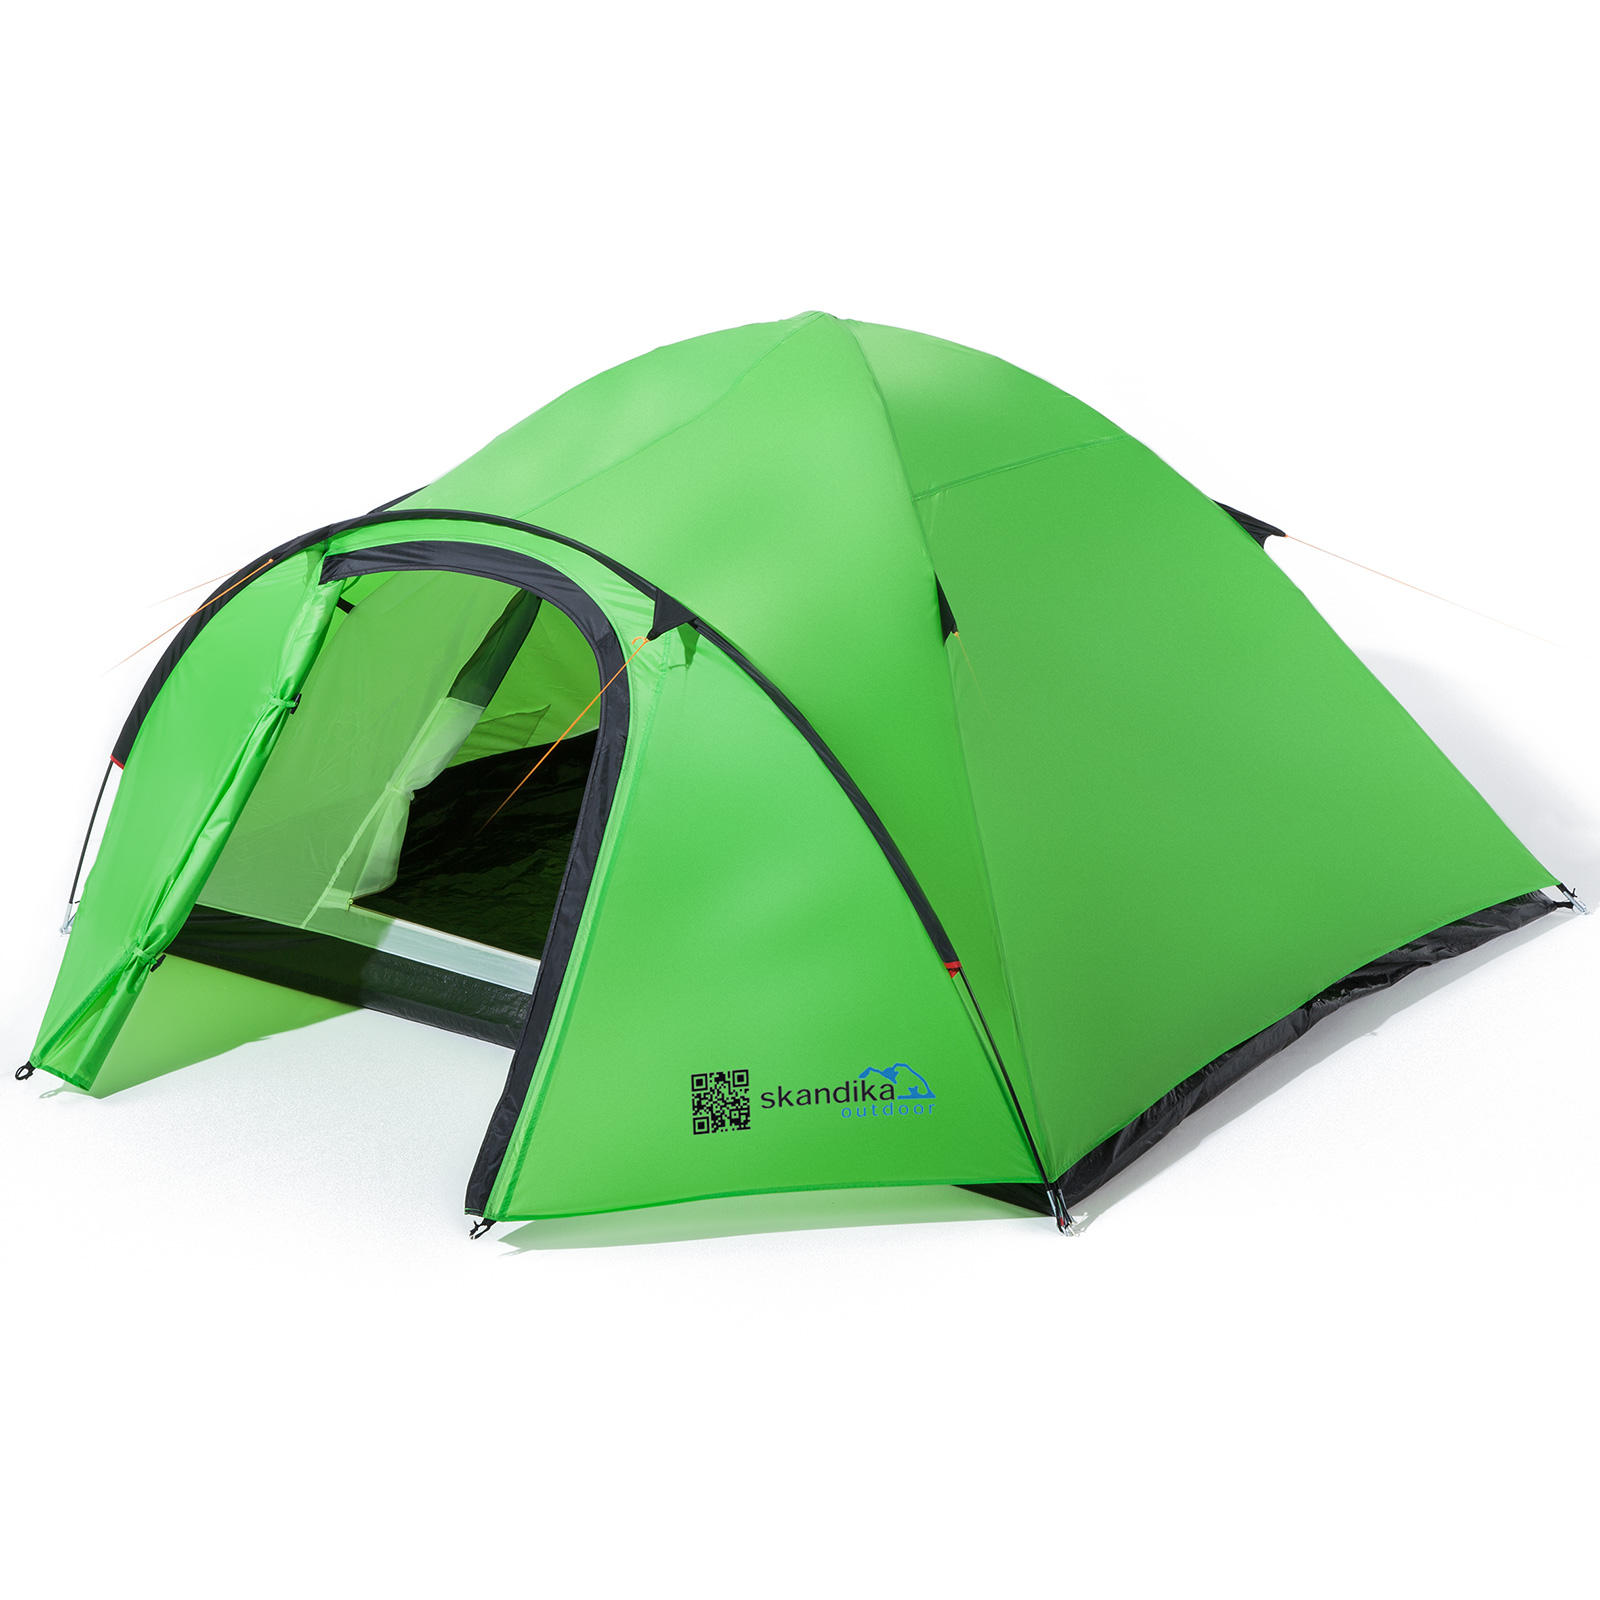 Skandika Larvik 3 Person Man Festival Hiking Tent Grün Sewn-in Floor 4.5 kg New